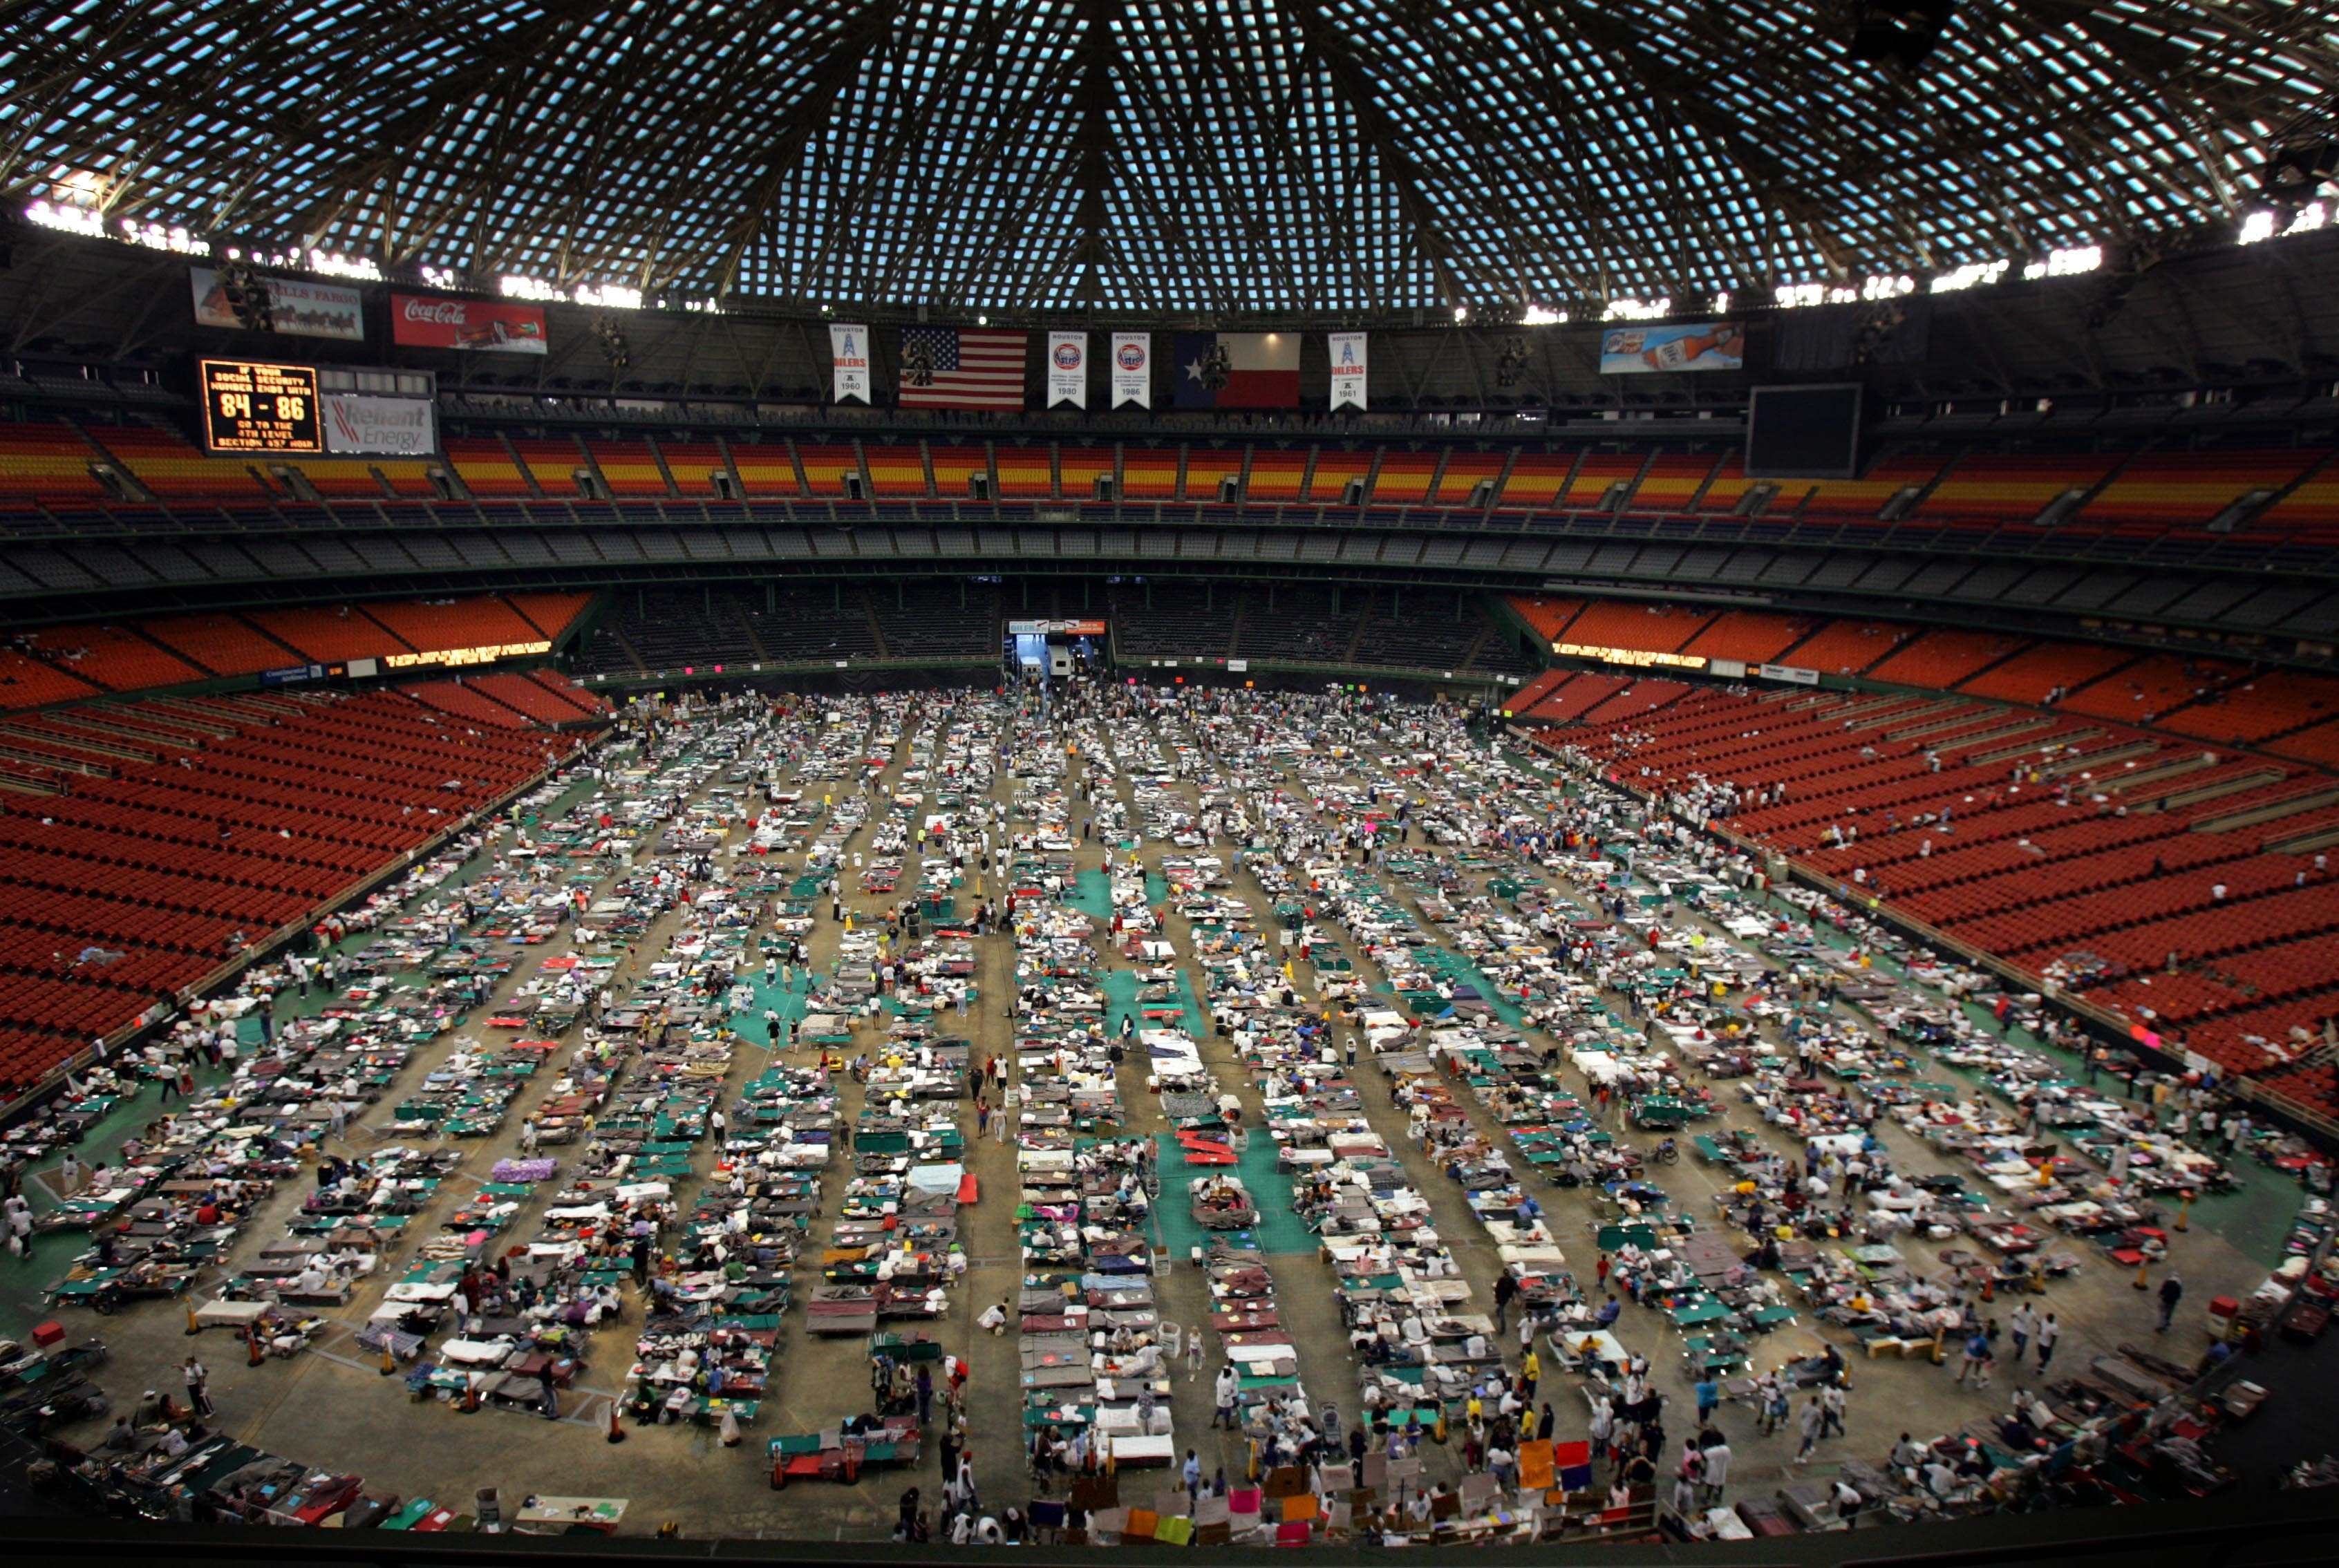 Victims of Hurricane Katrina stay at the Astrodome stadium where 16,000 evacuees were receiving food and shelter in Houston on Sept. 4, 2005.